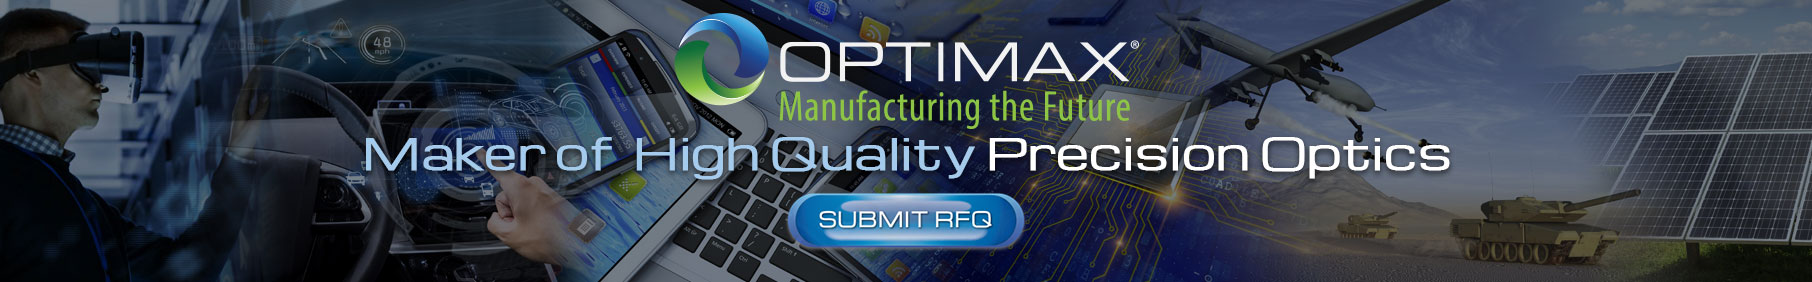 banner-full-Submit-RFQ-Manufacturing-Future